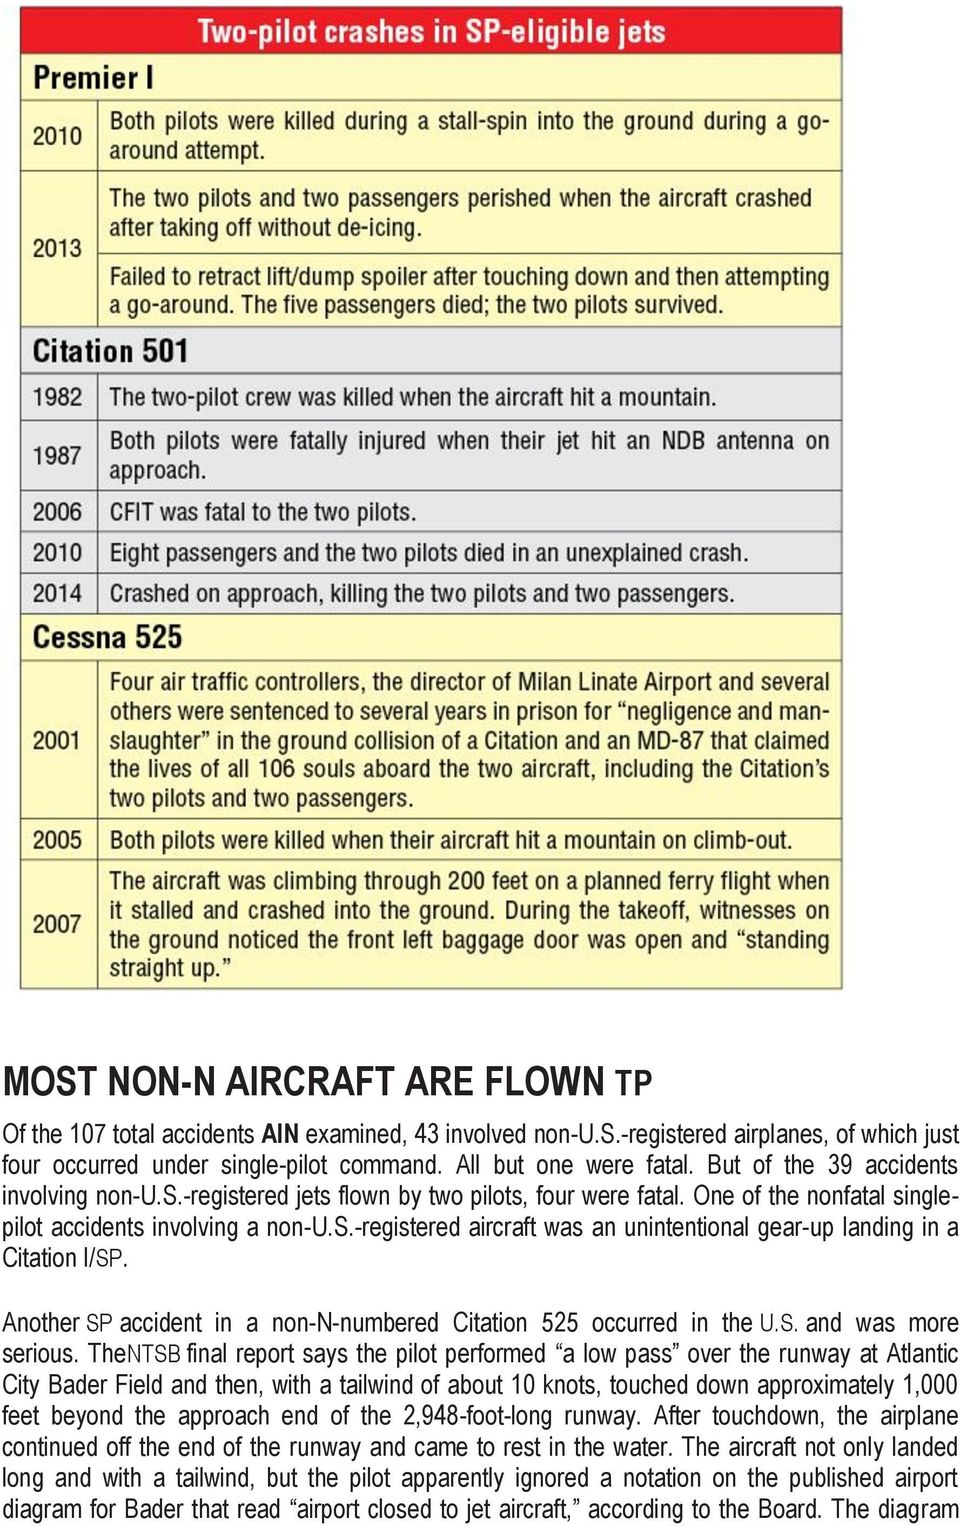 Another SP accident in a non-n-numbered Citation 525 occurred in the U.S. and was more serious.